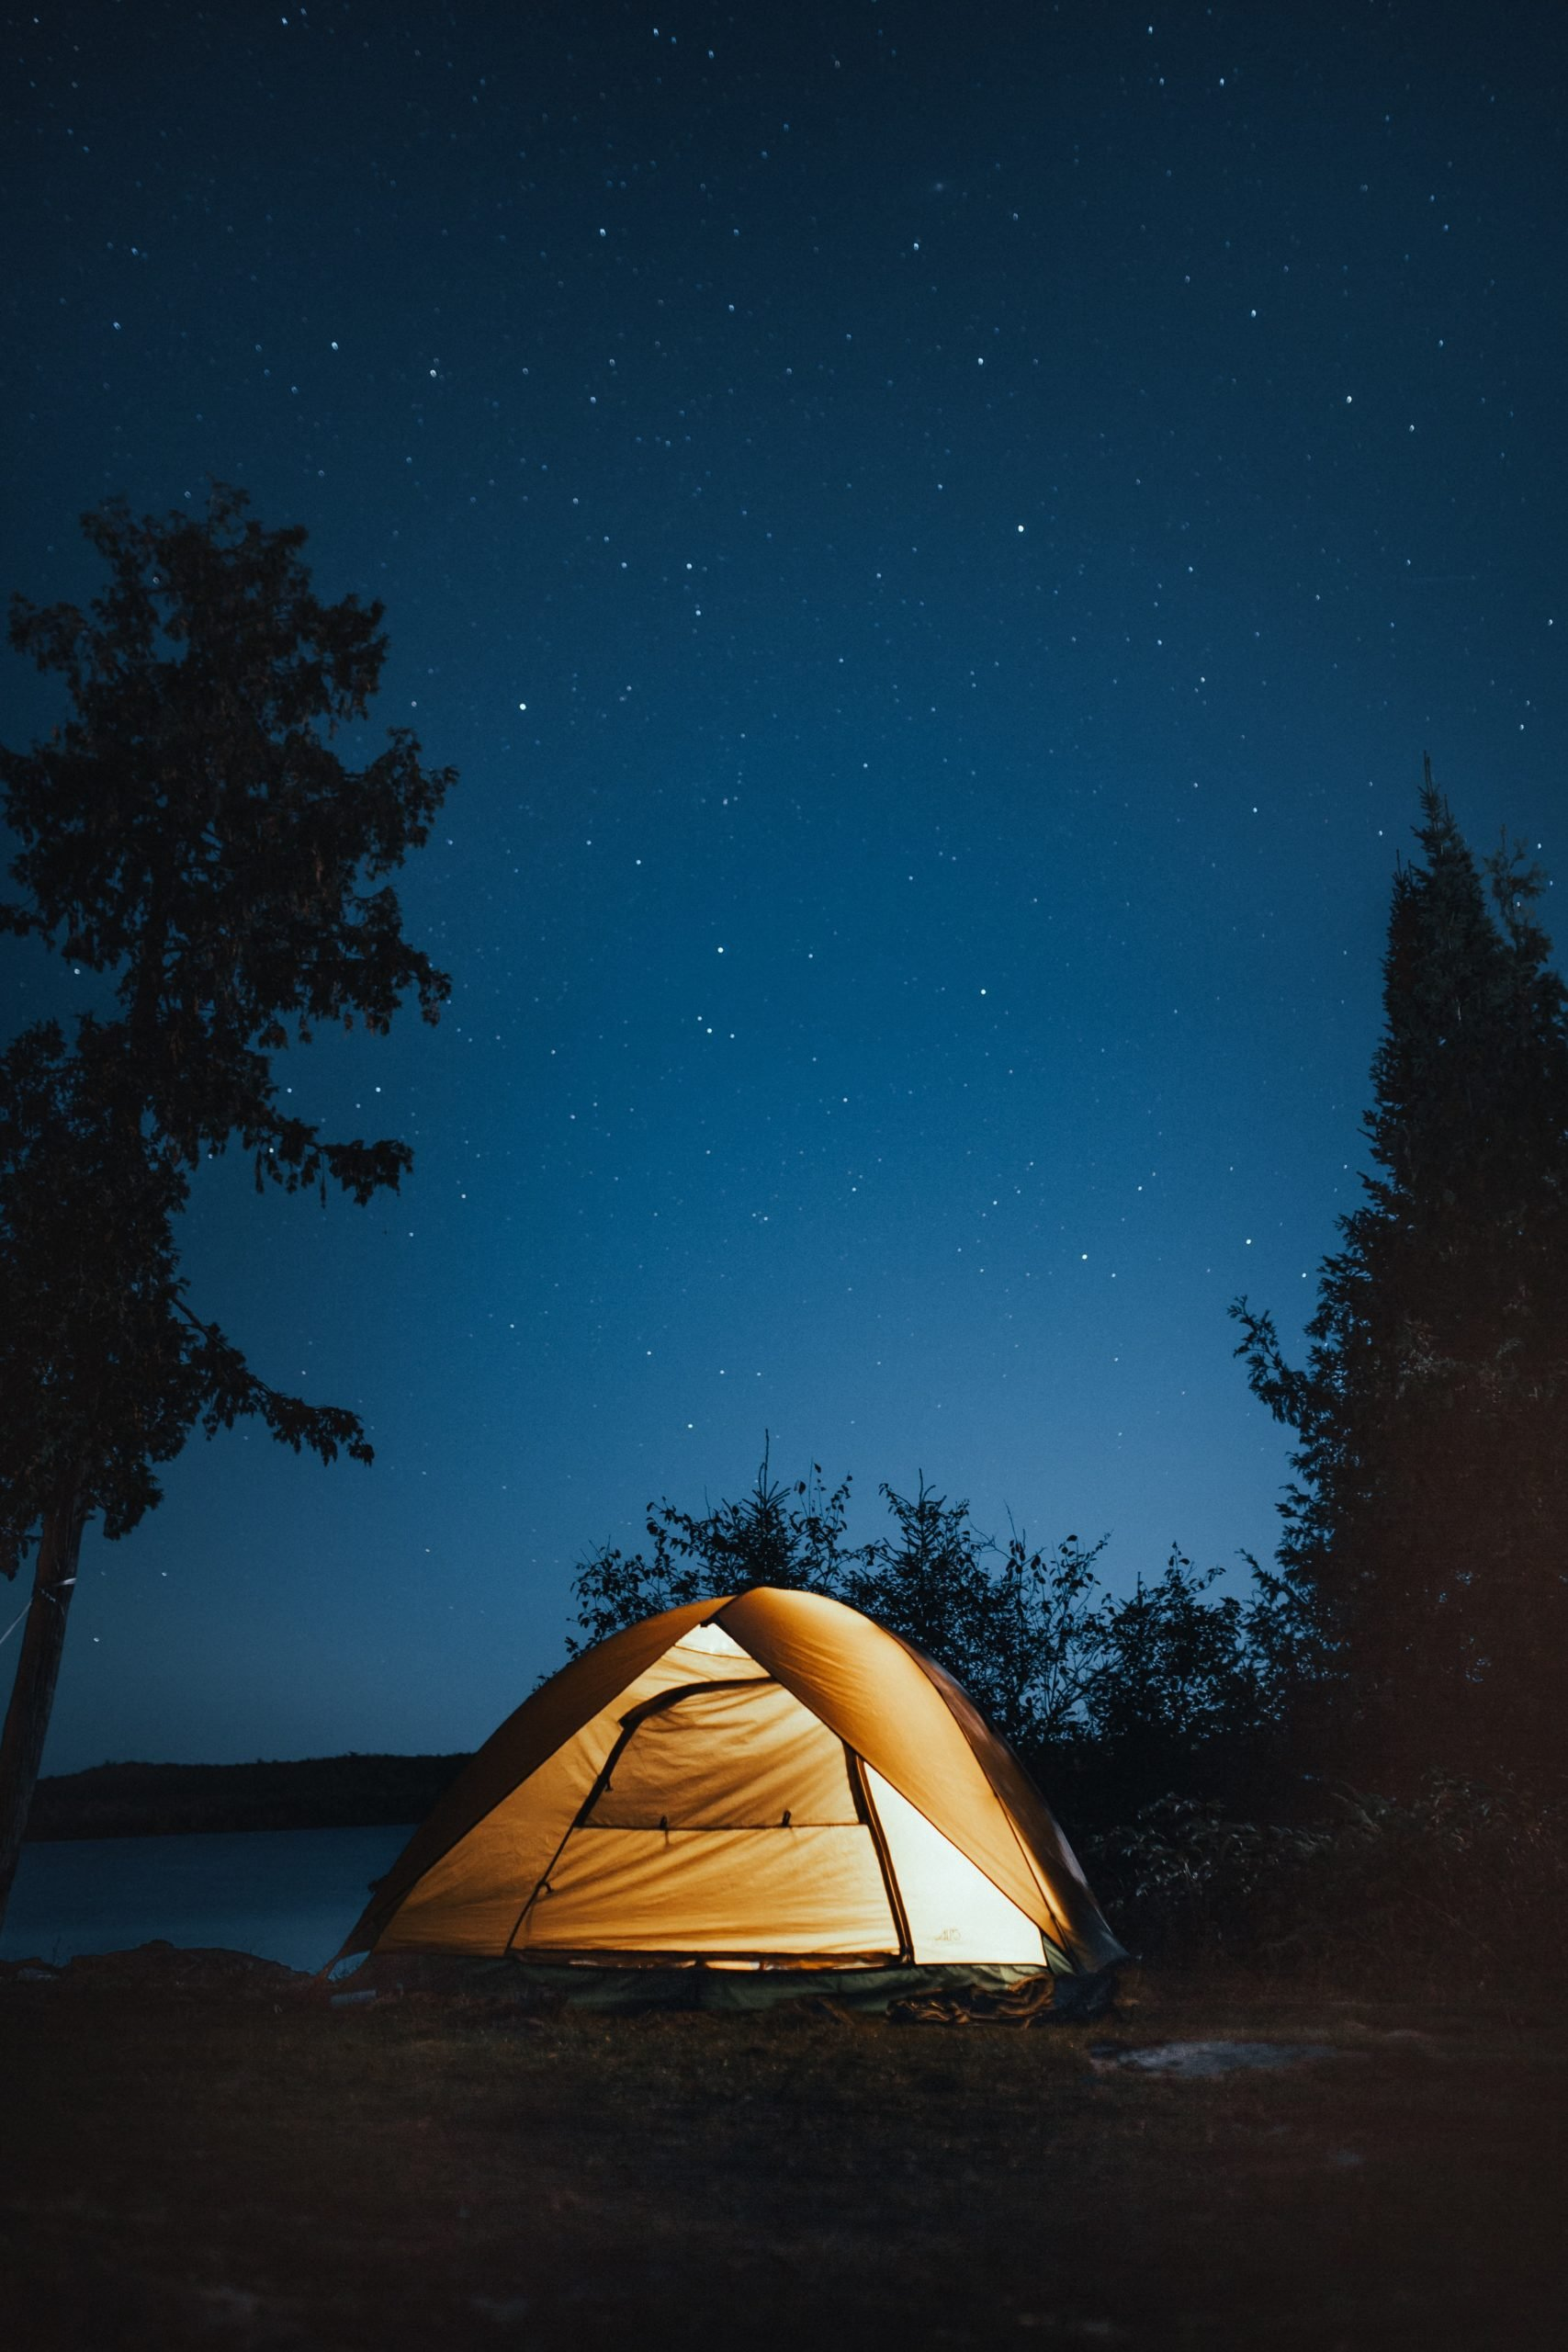 Camping is a wonderful way to experience nature